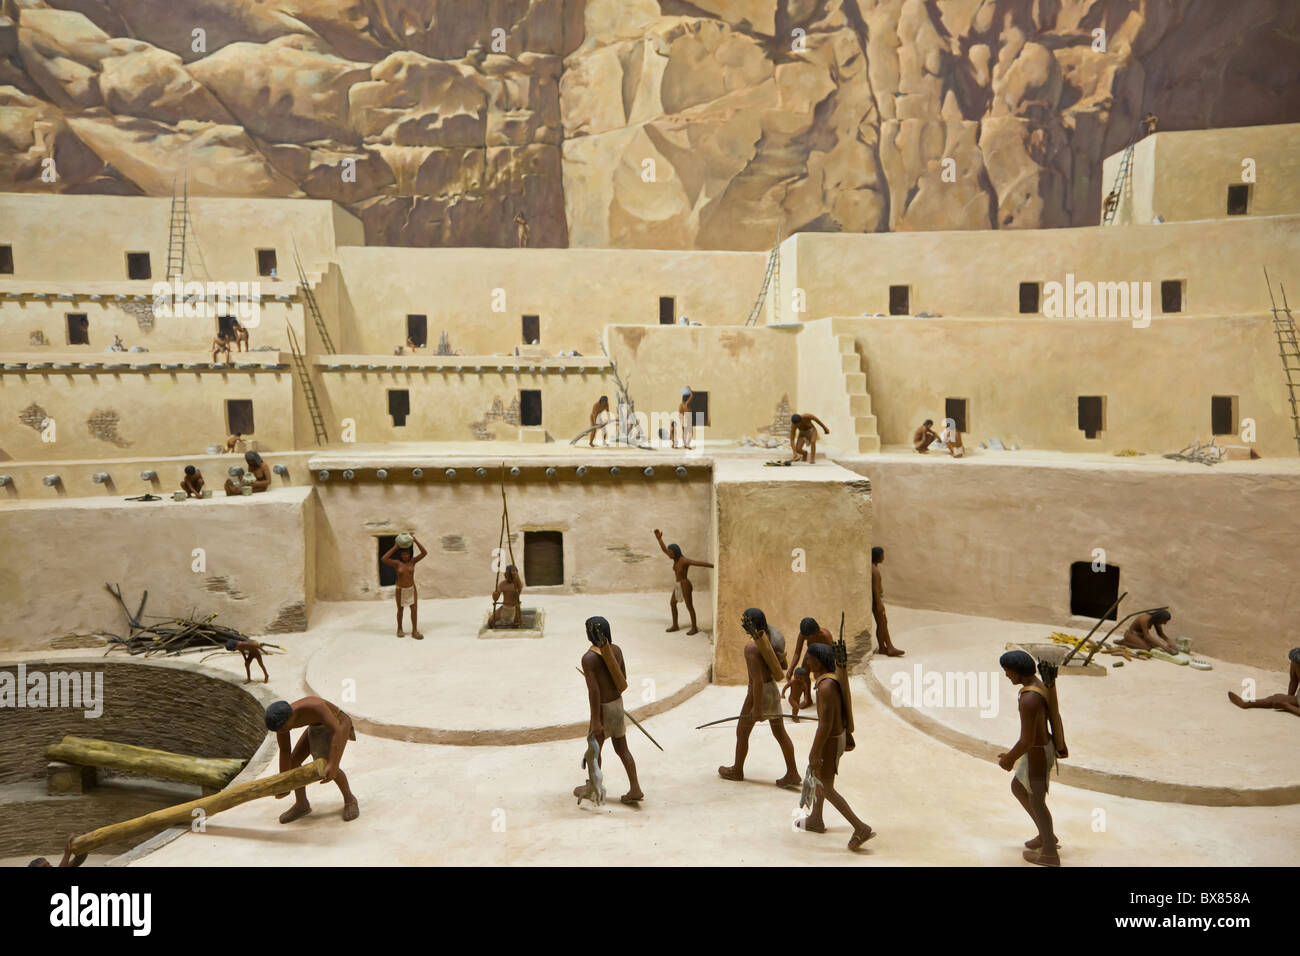 diorama-depicting-chacoan-life-at-the-ch